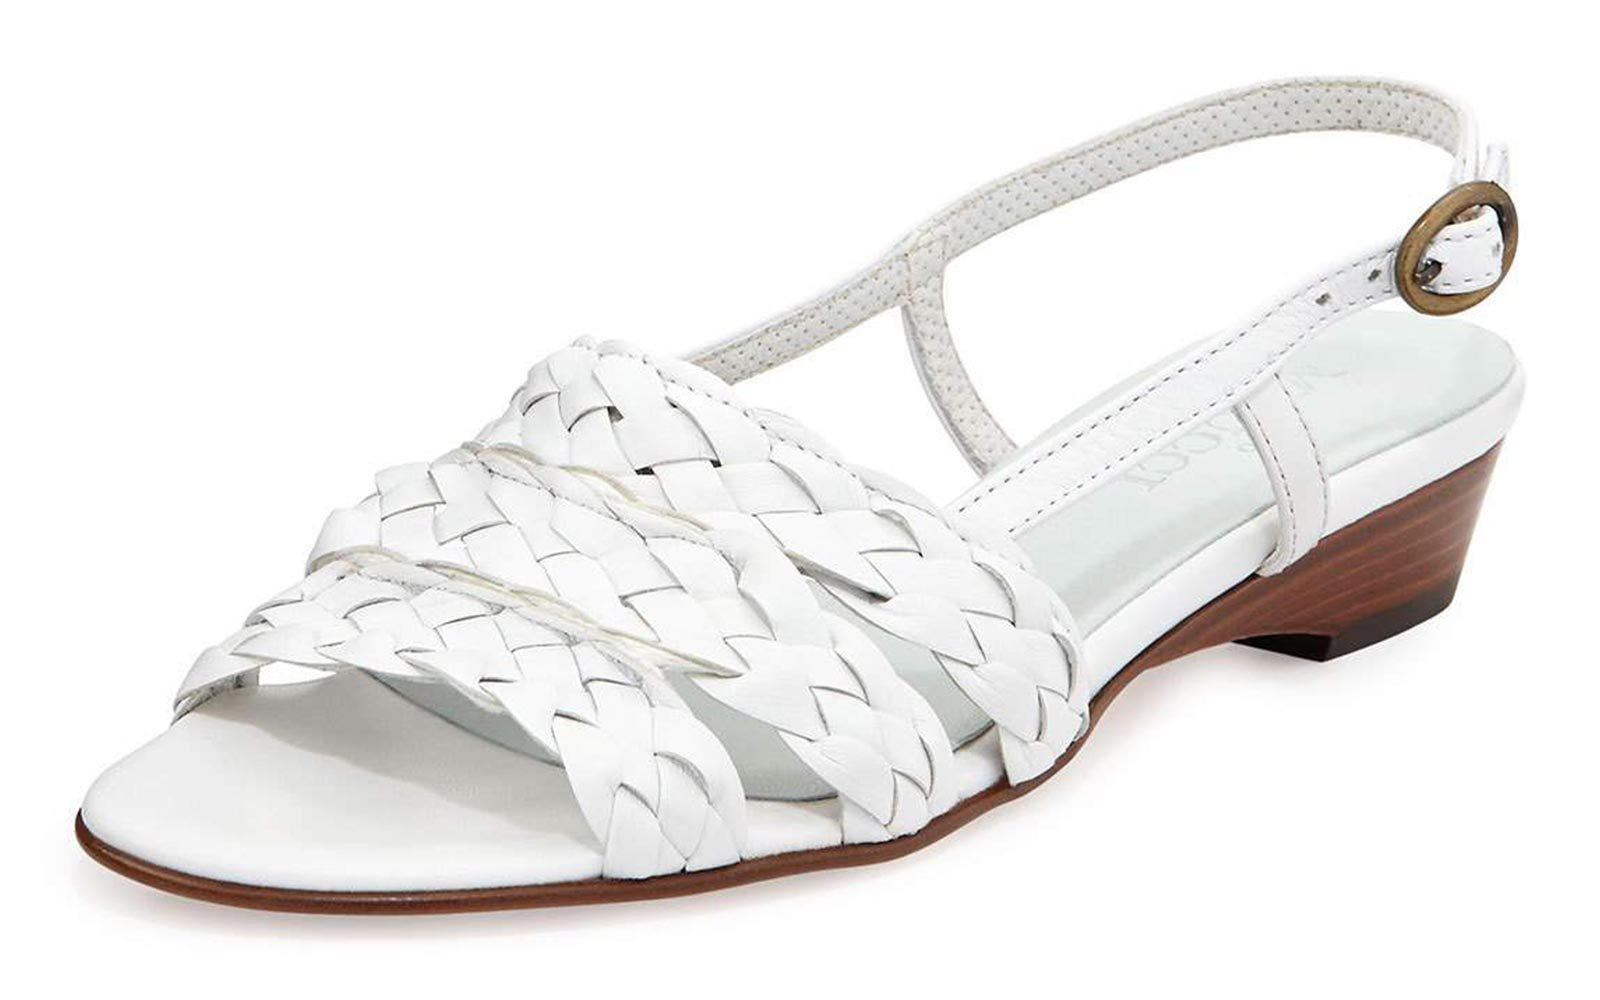 The Best Beach Sandals For Your Next Vacation Travel